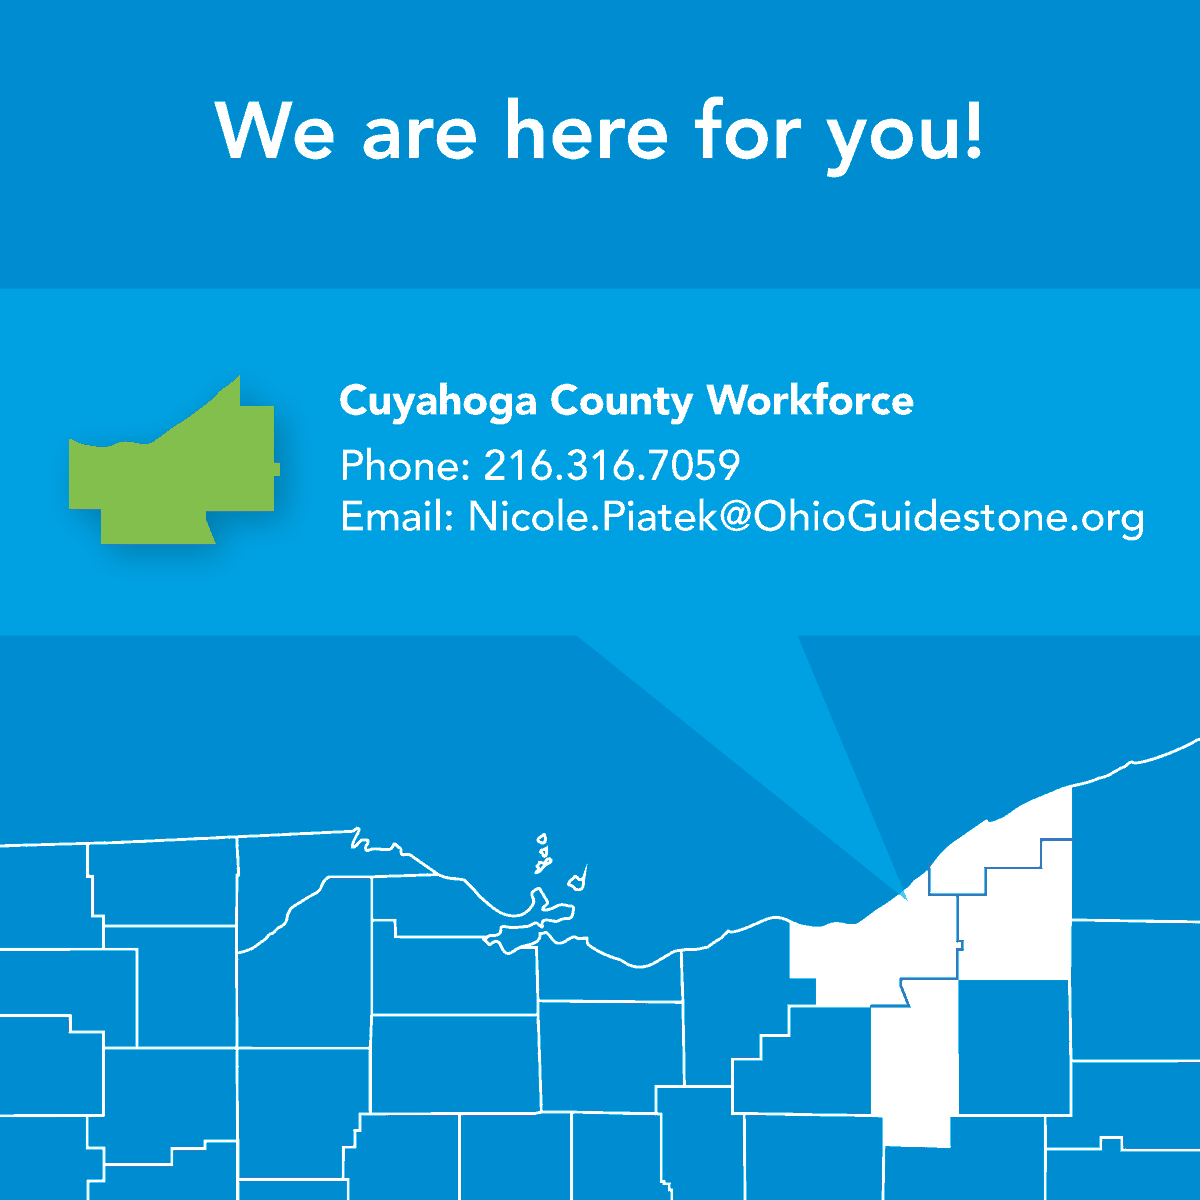 OhioGuidestone's Workforce 360° Team is still here and serving you! In Cuyahoga County? We are, too, and we're helping current, previous and potential clients navigate this difficult time. Don't hesitate to reach out if you need assistance.